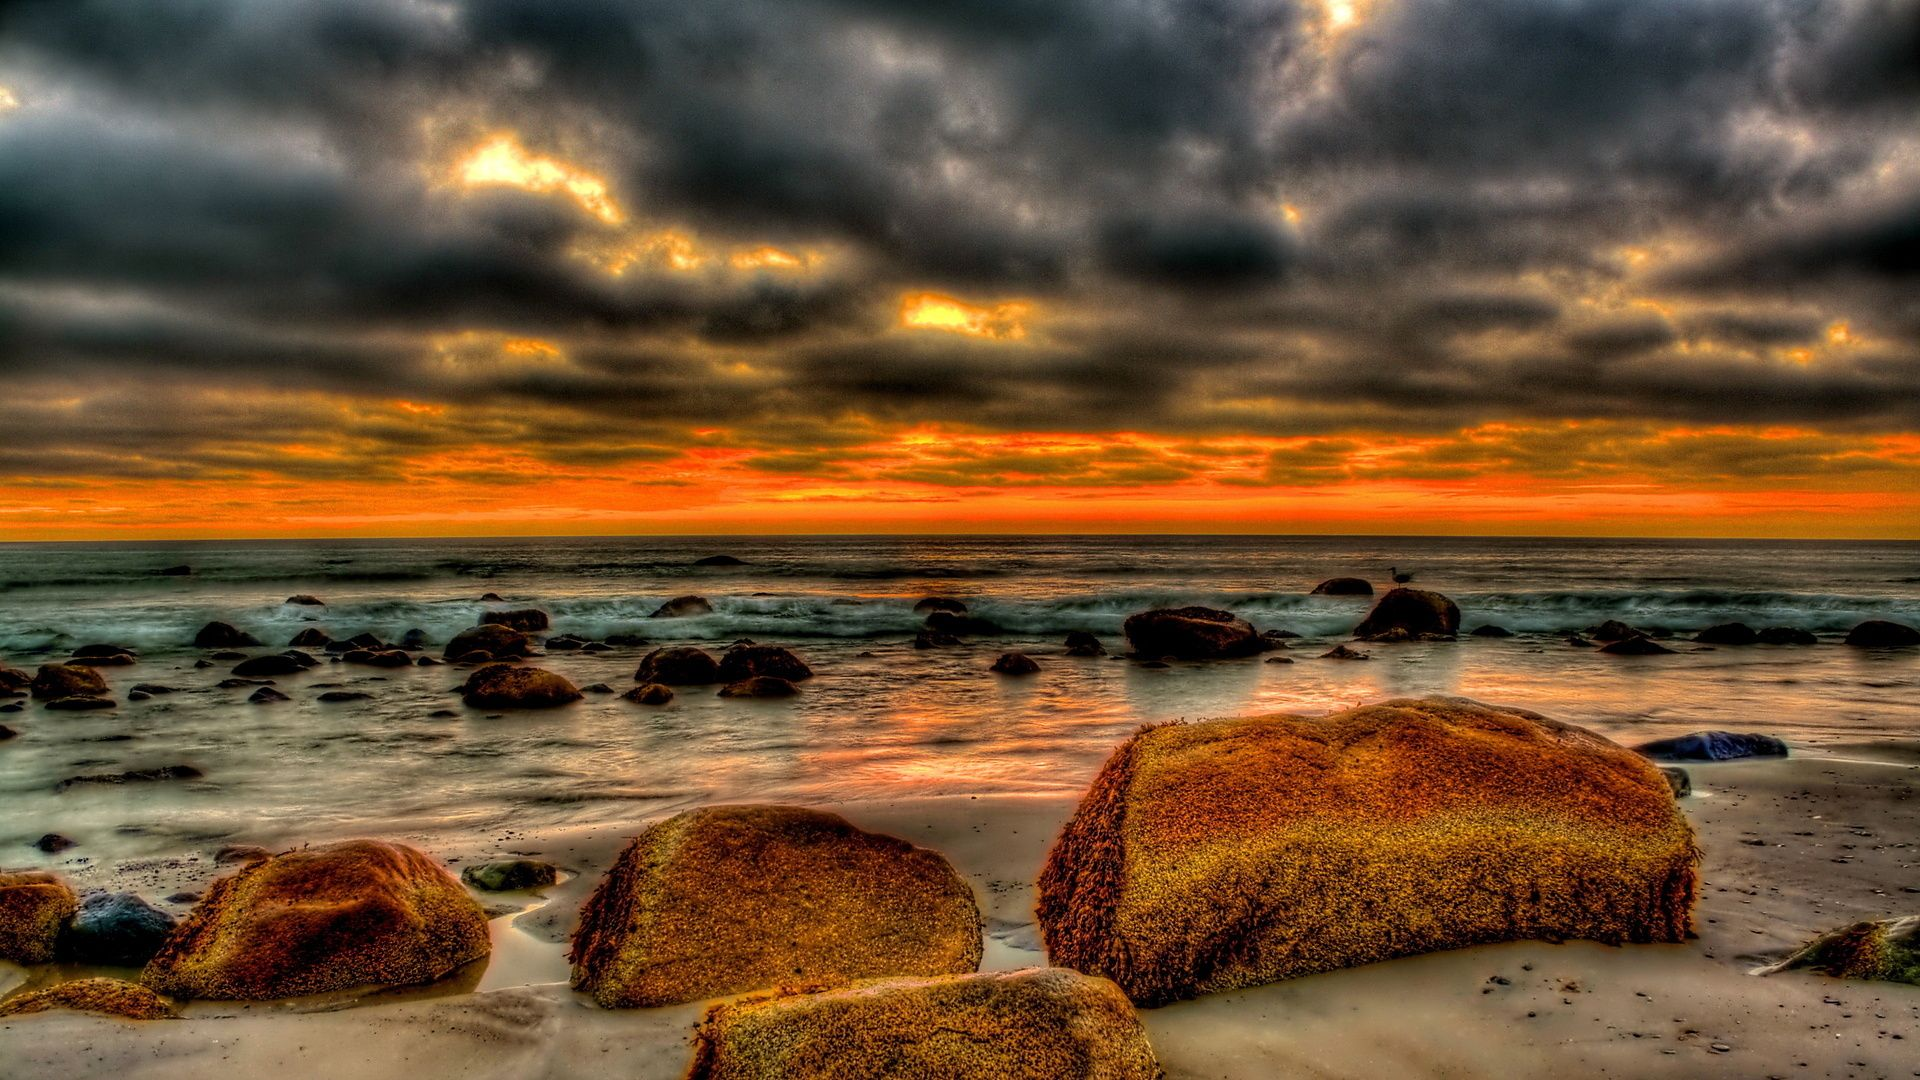 beautiful beach strewn with rocks at sunset hdr hd desktop